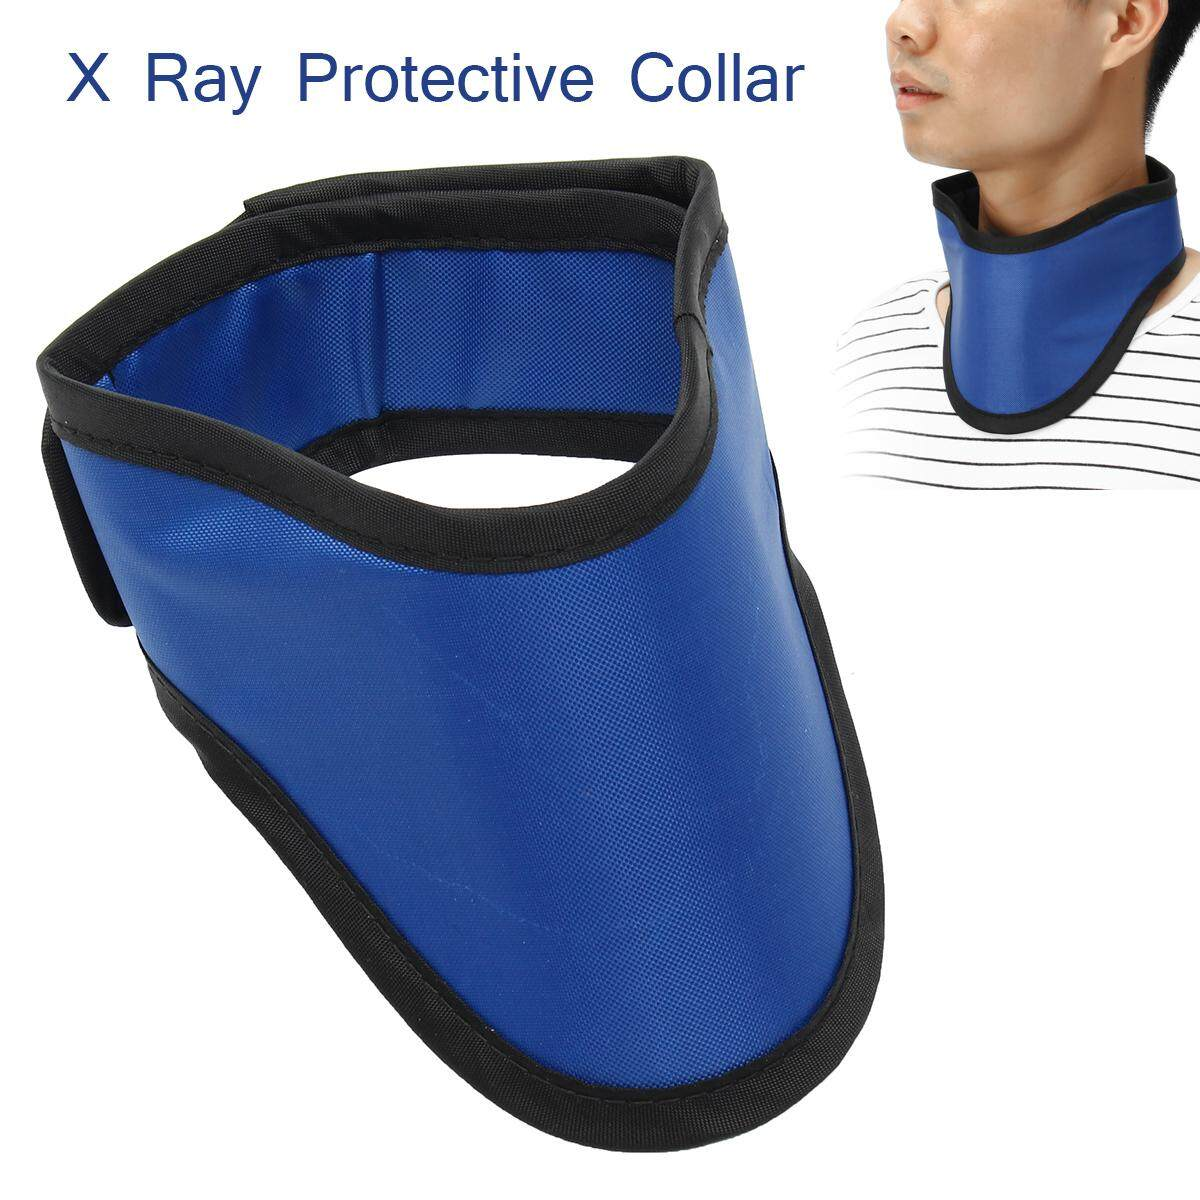 X Ray Protective Collar Lead Thyroid Collar Ct Radiation Shield Lead Neck Cover By Freebang